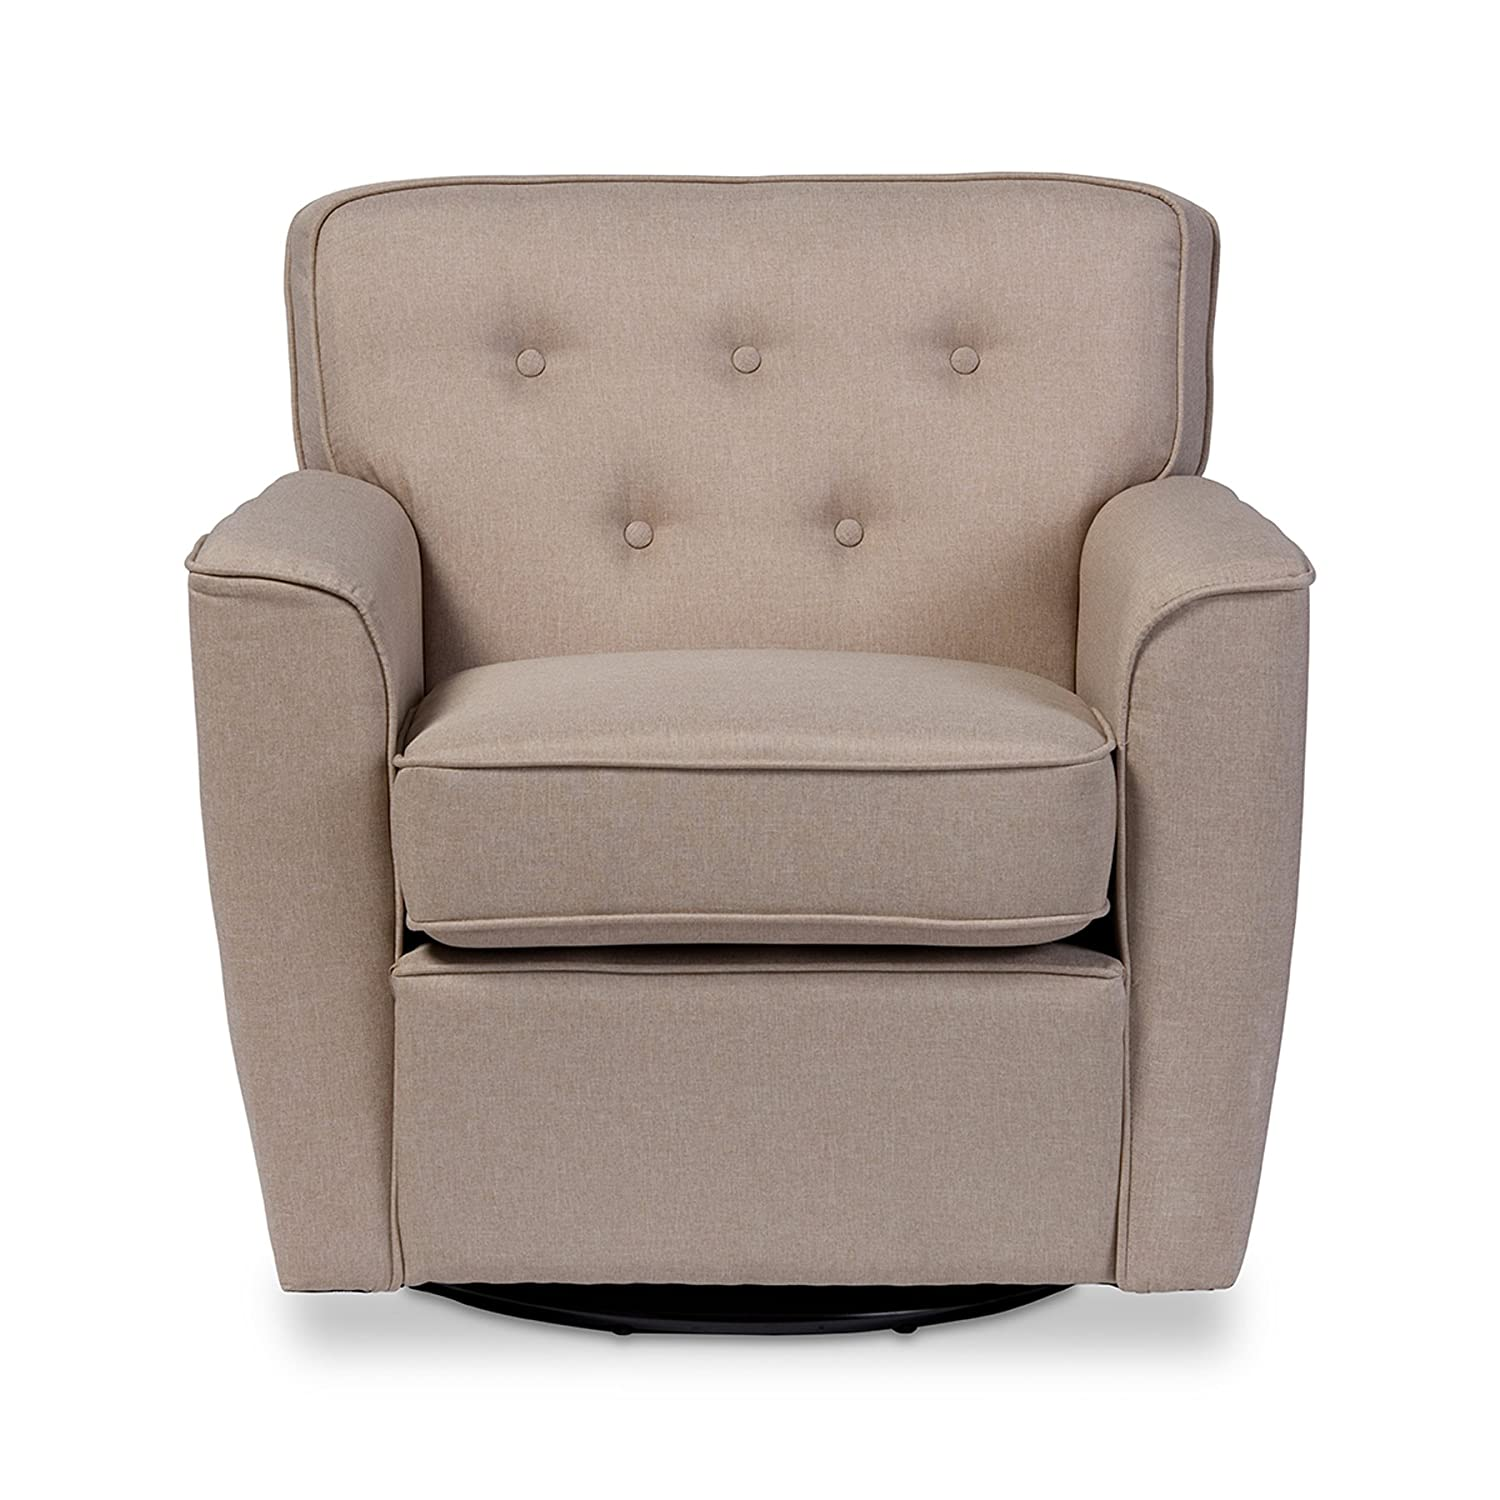 Amazon.com: Wholesale Interiors Canberra Retro Fabric Upholstered  Button Tufted Swivel Glider Lounge Chair With Arms, Large, Beige: Kitchen U0026  Dining Part 94